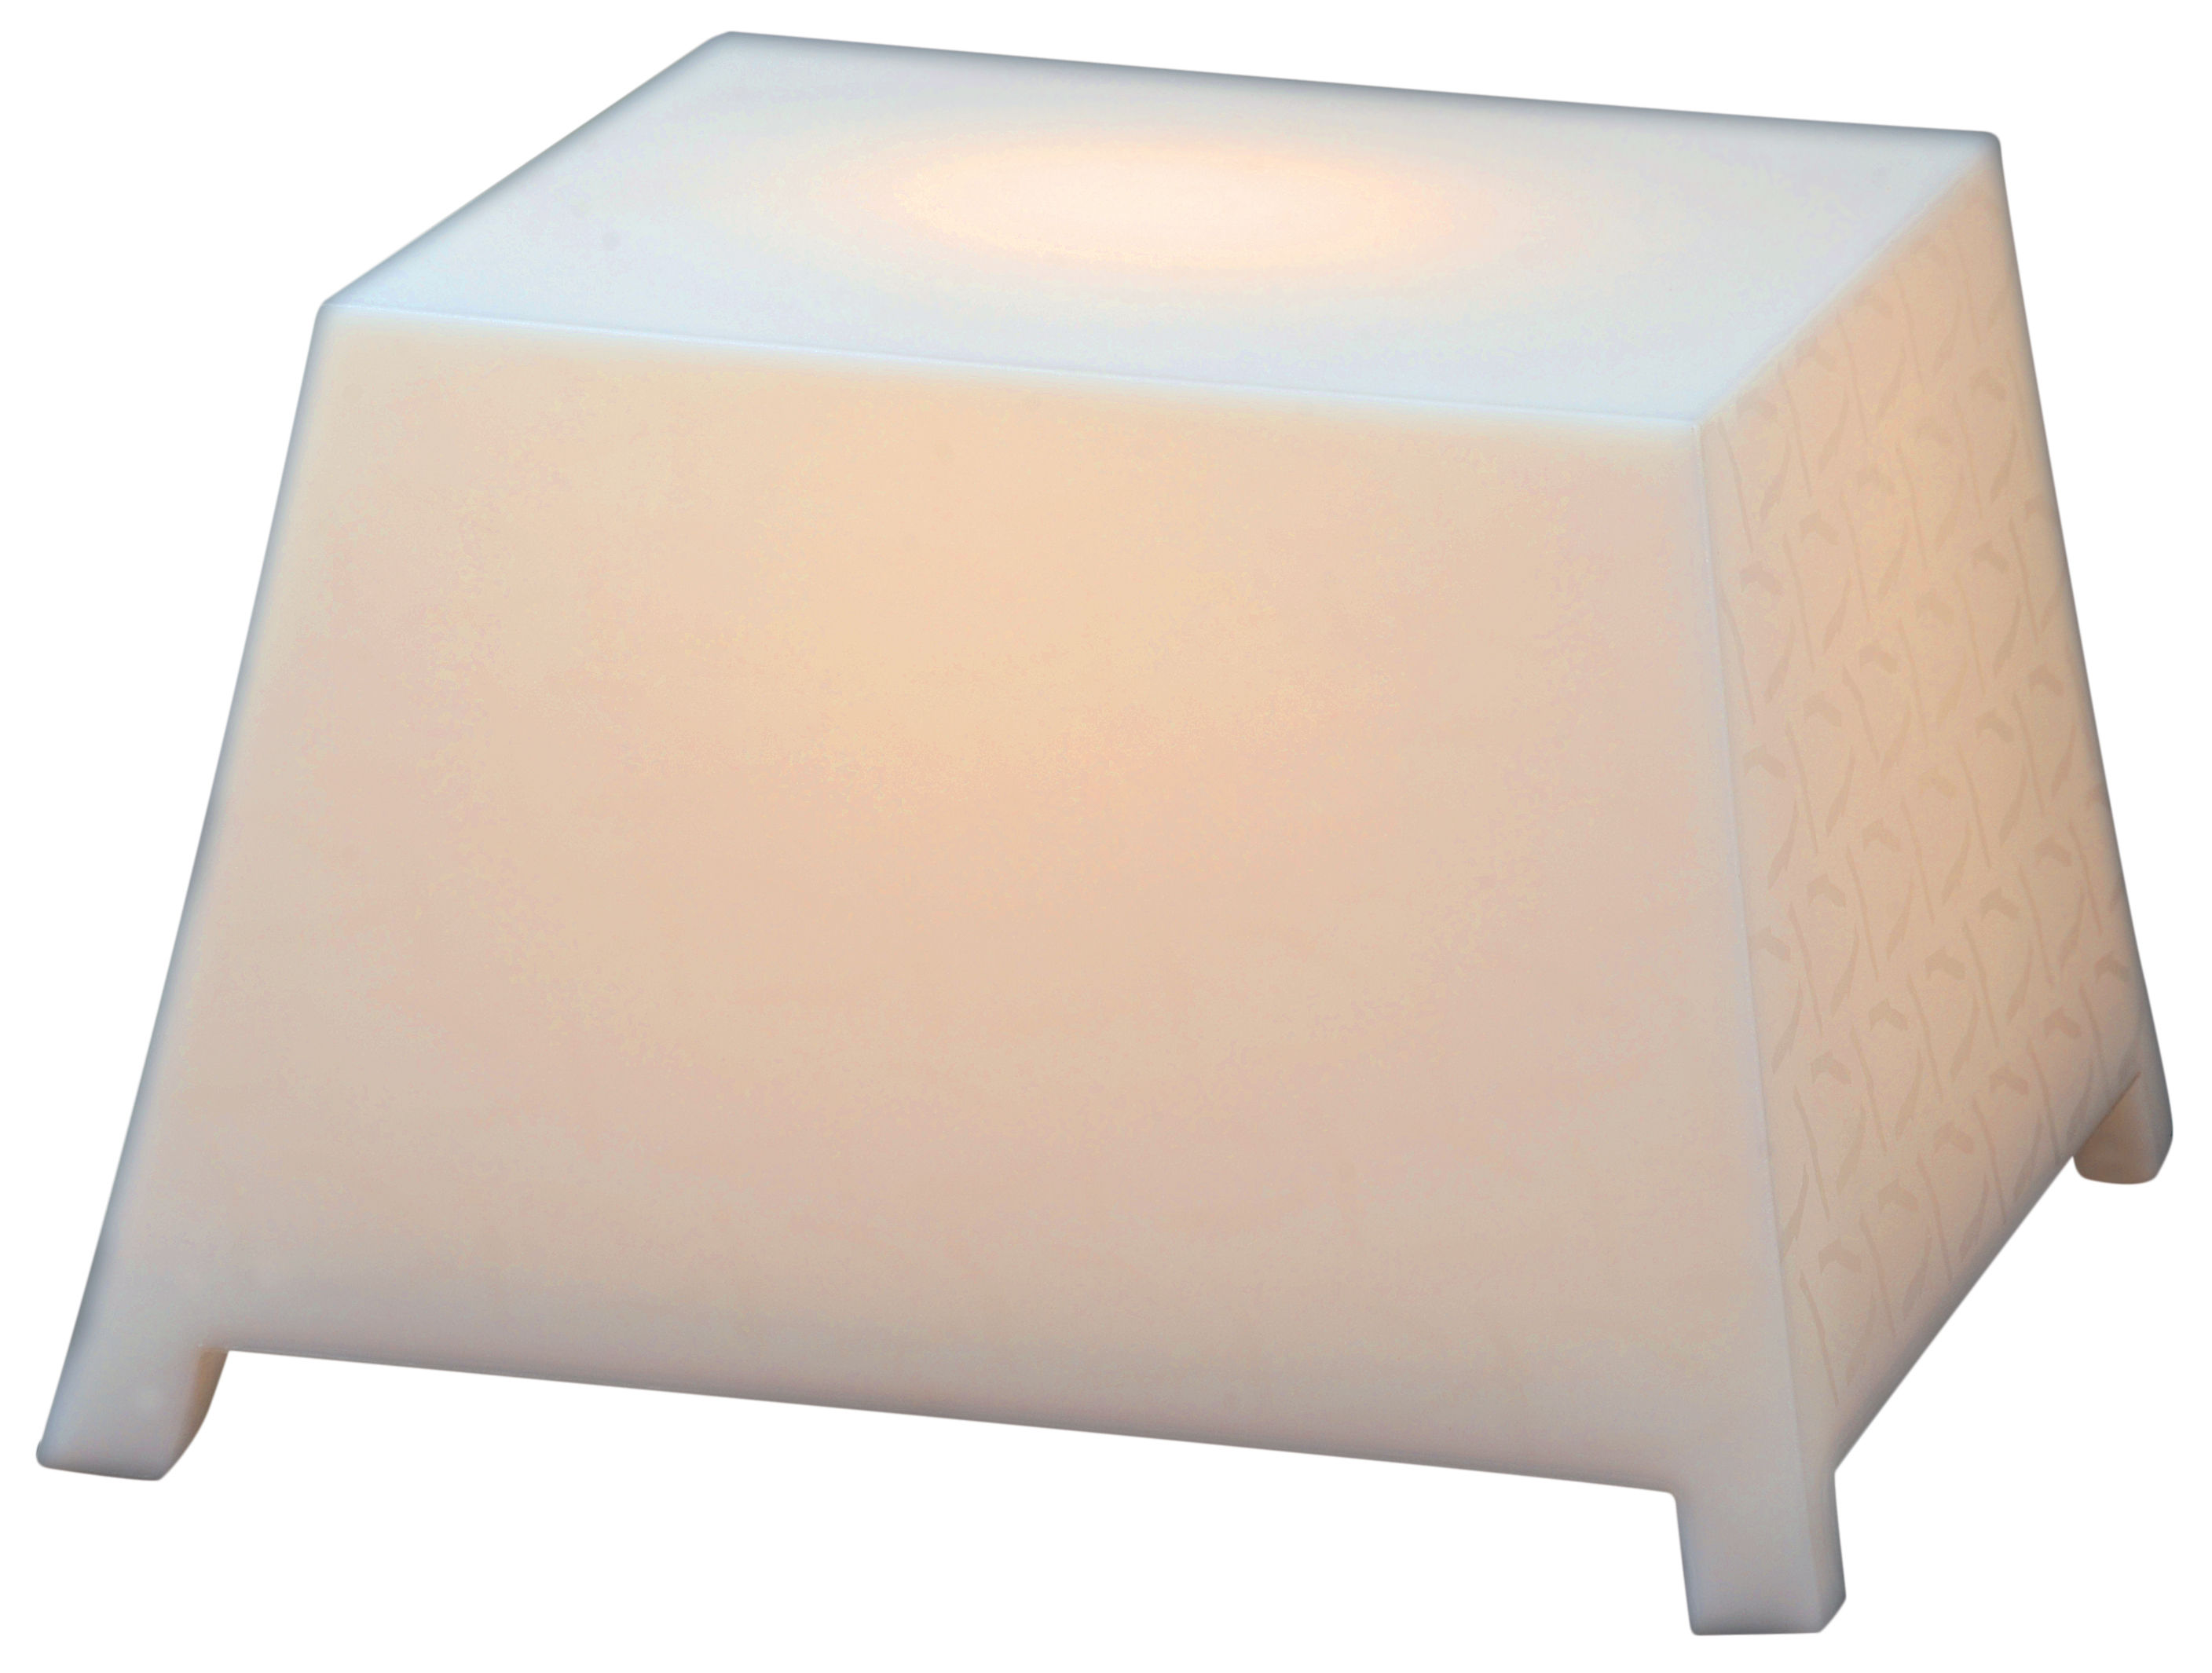 Table basse lumineuse raffy outdoor pour l 39 int rieur l for Table exterieur lumineuse